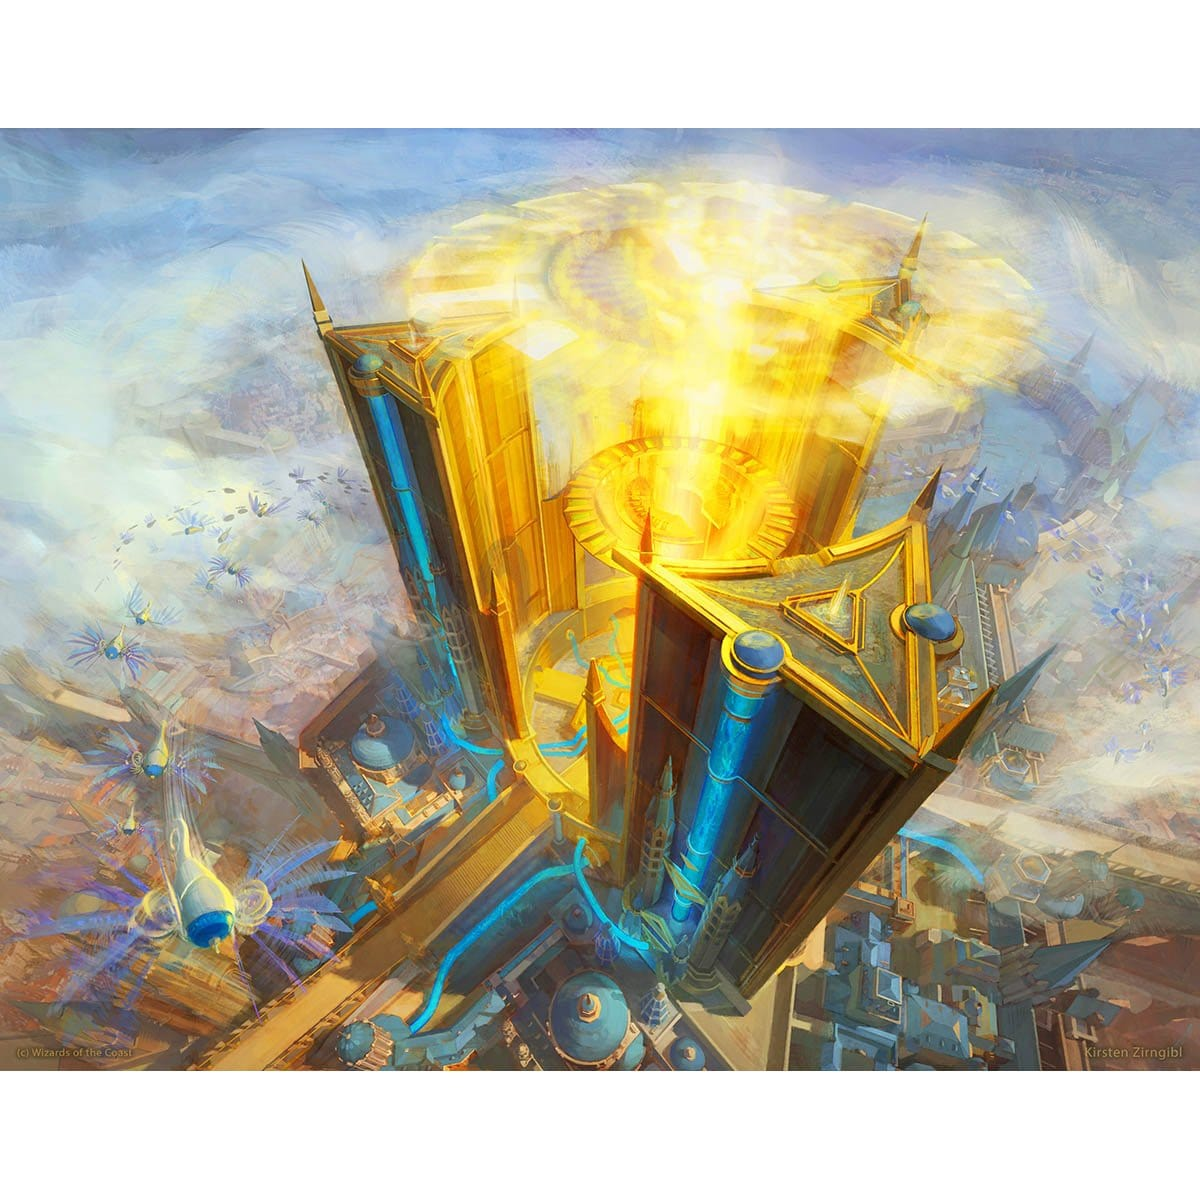 Island (War of the Spark) Print - Print - Original Magic Art - Accessories for Magic the Gathering and other card games